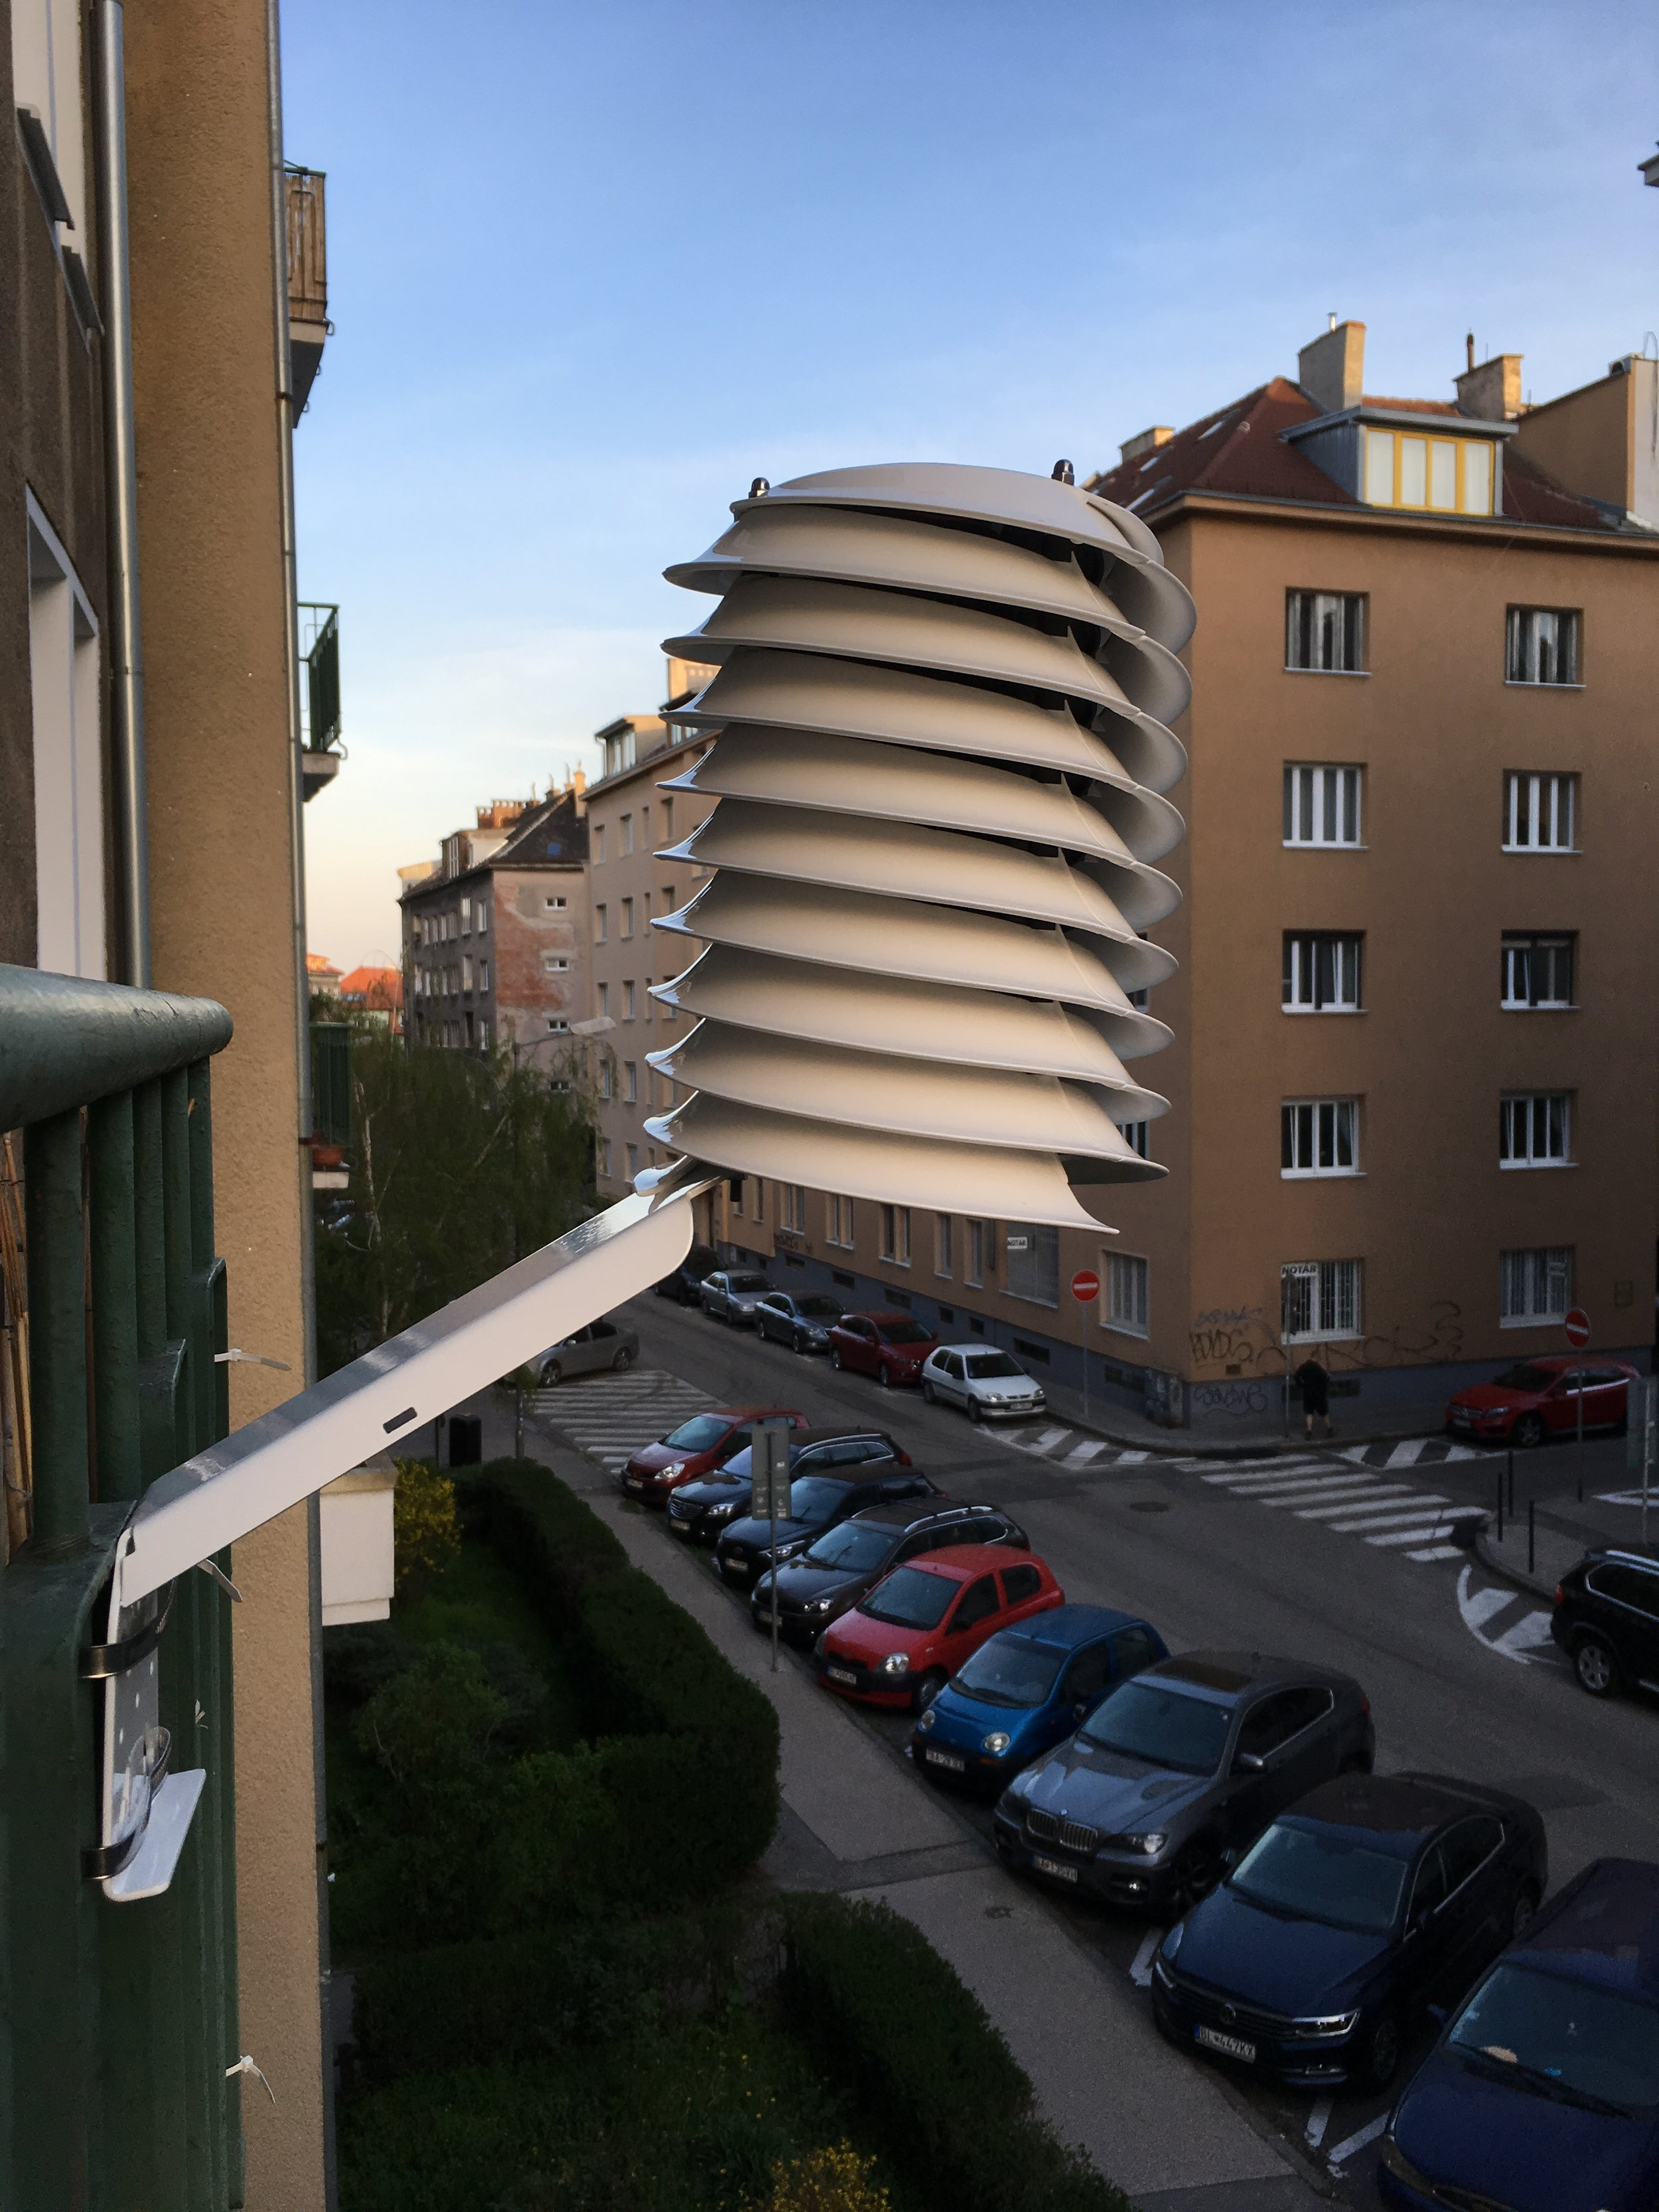 apartment building balcony weather station overlooking a city street